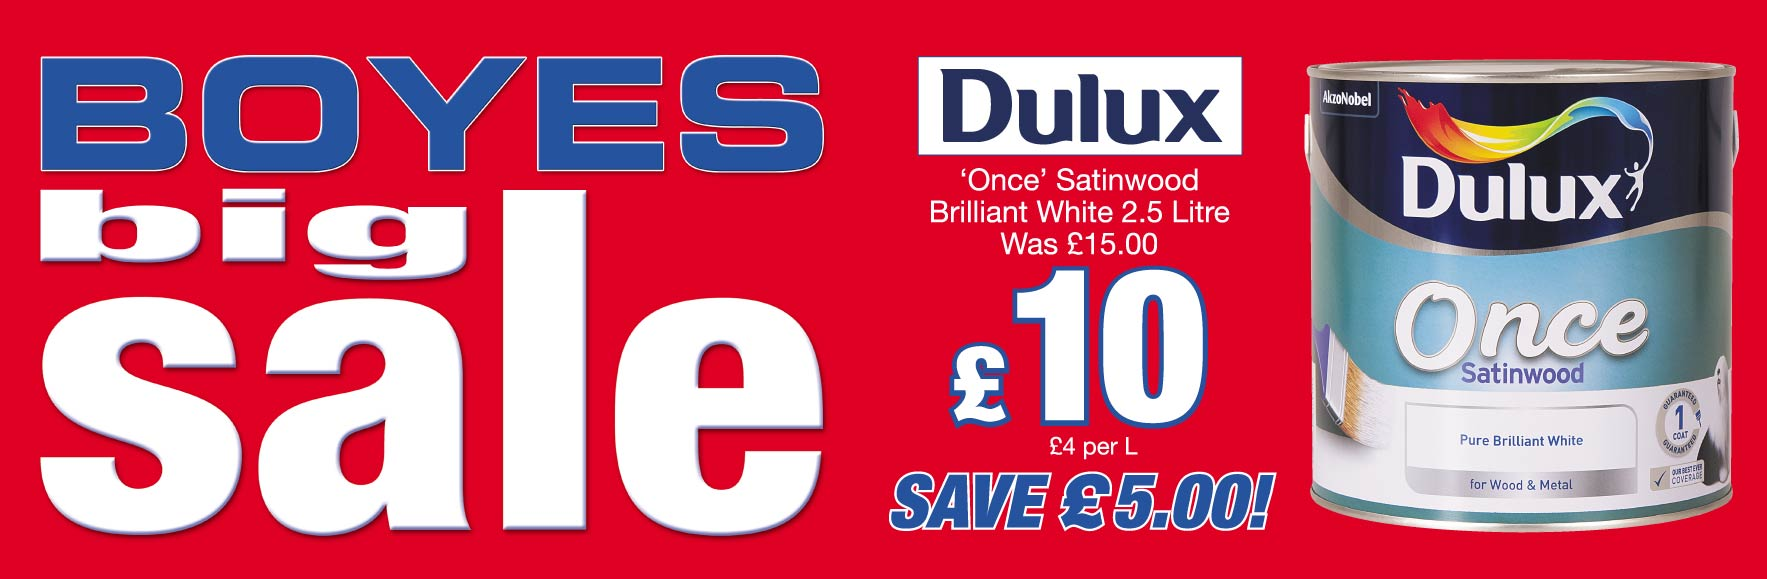 Dulux 'Once' Satinwood Pure Brilliant White Paint. Was £15.00 NOW £10!